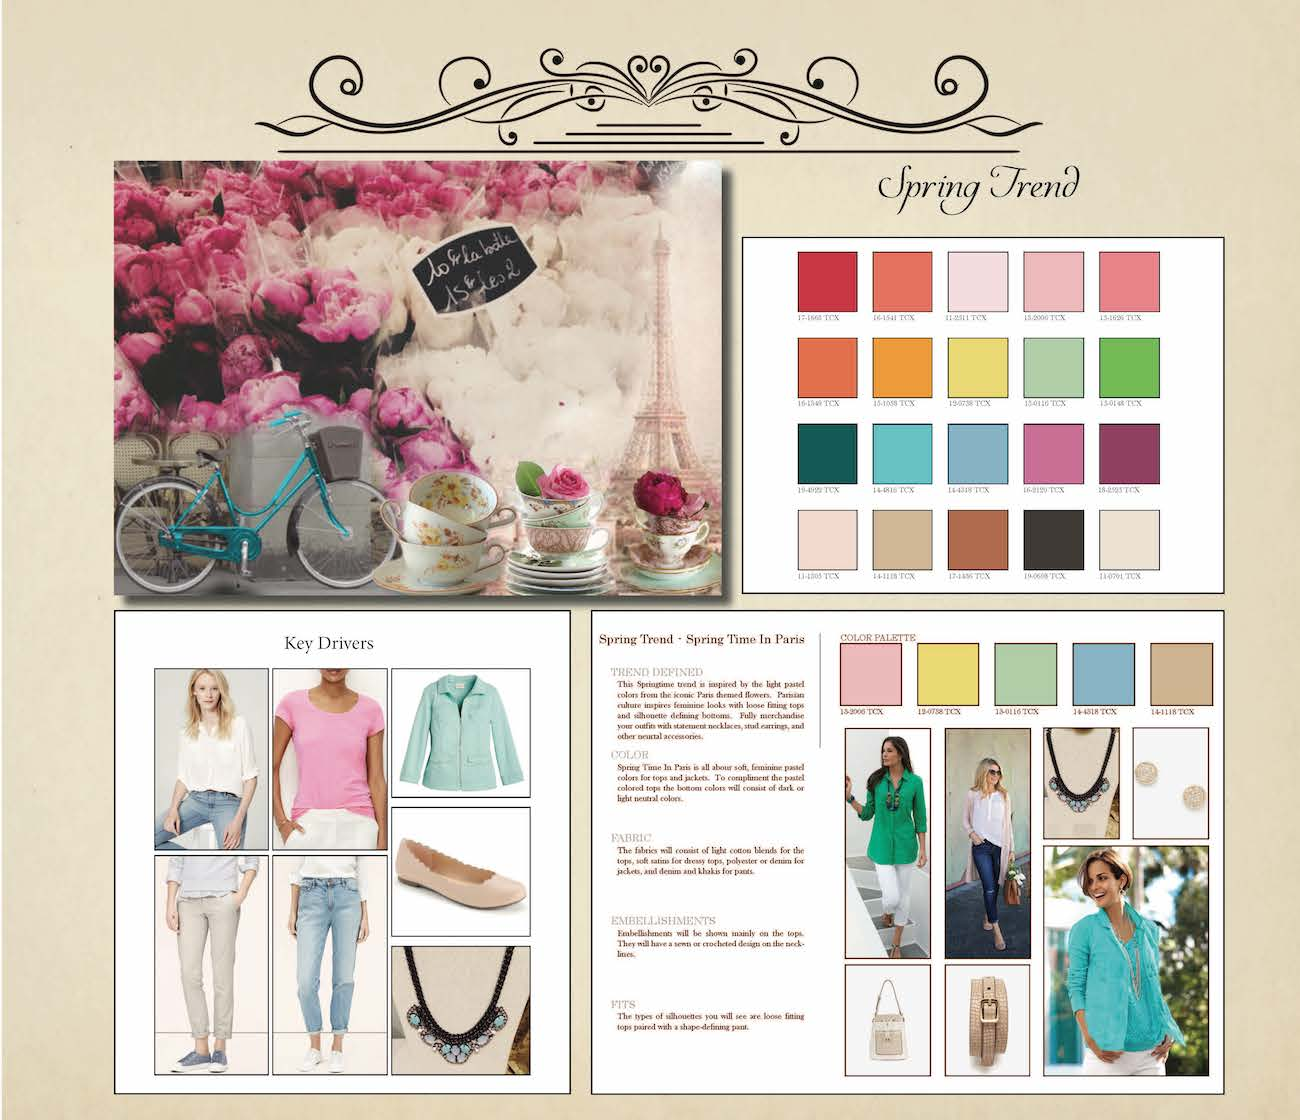 AllisonProszek_Fashion_Marketing_Page01